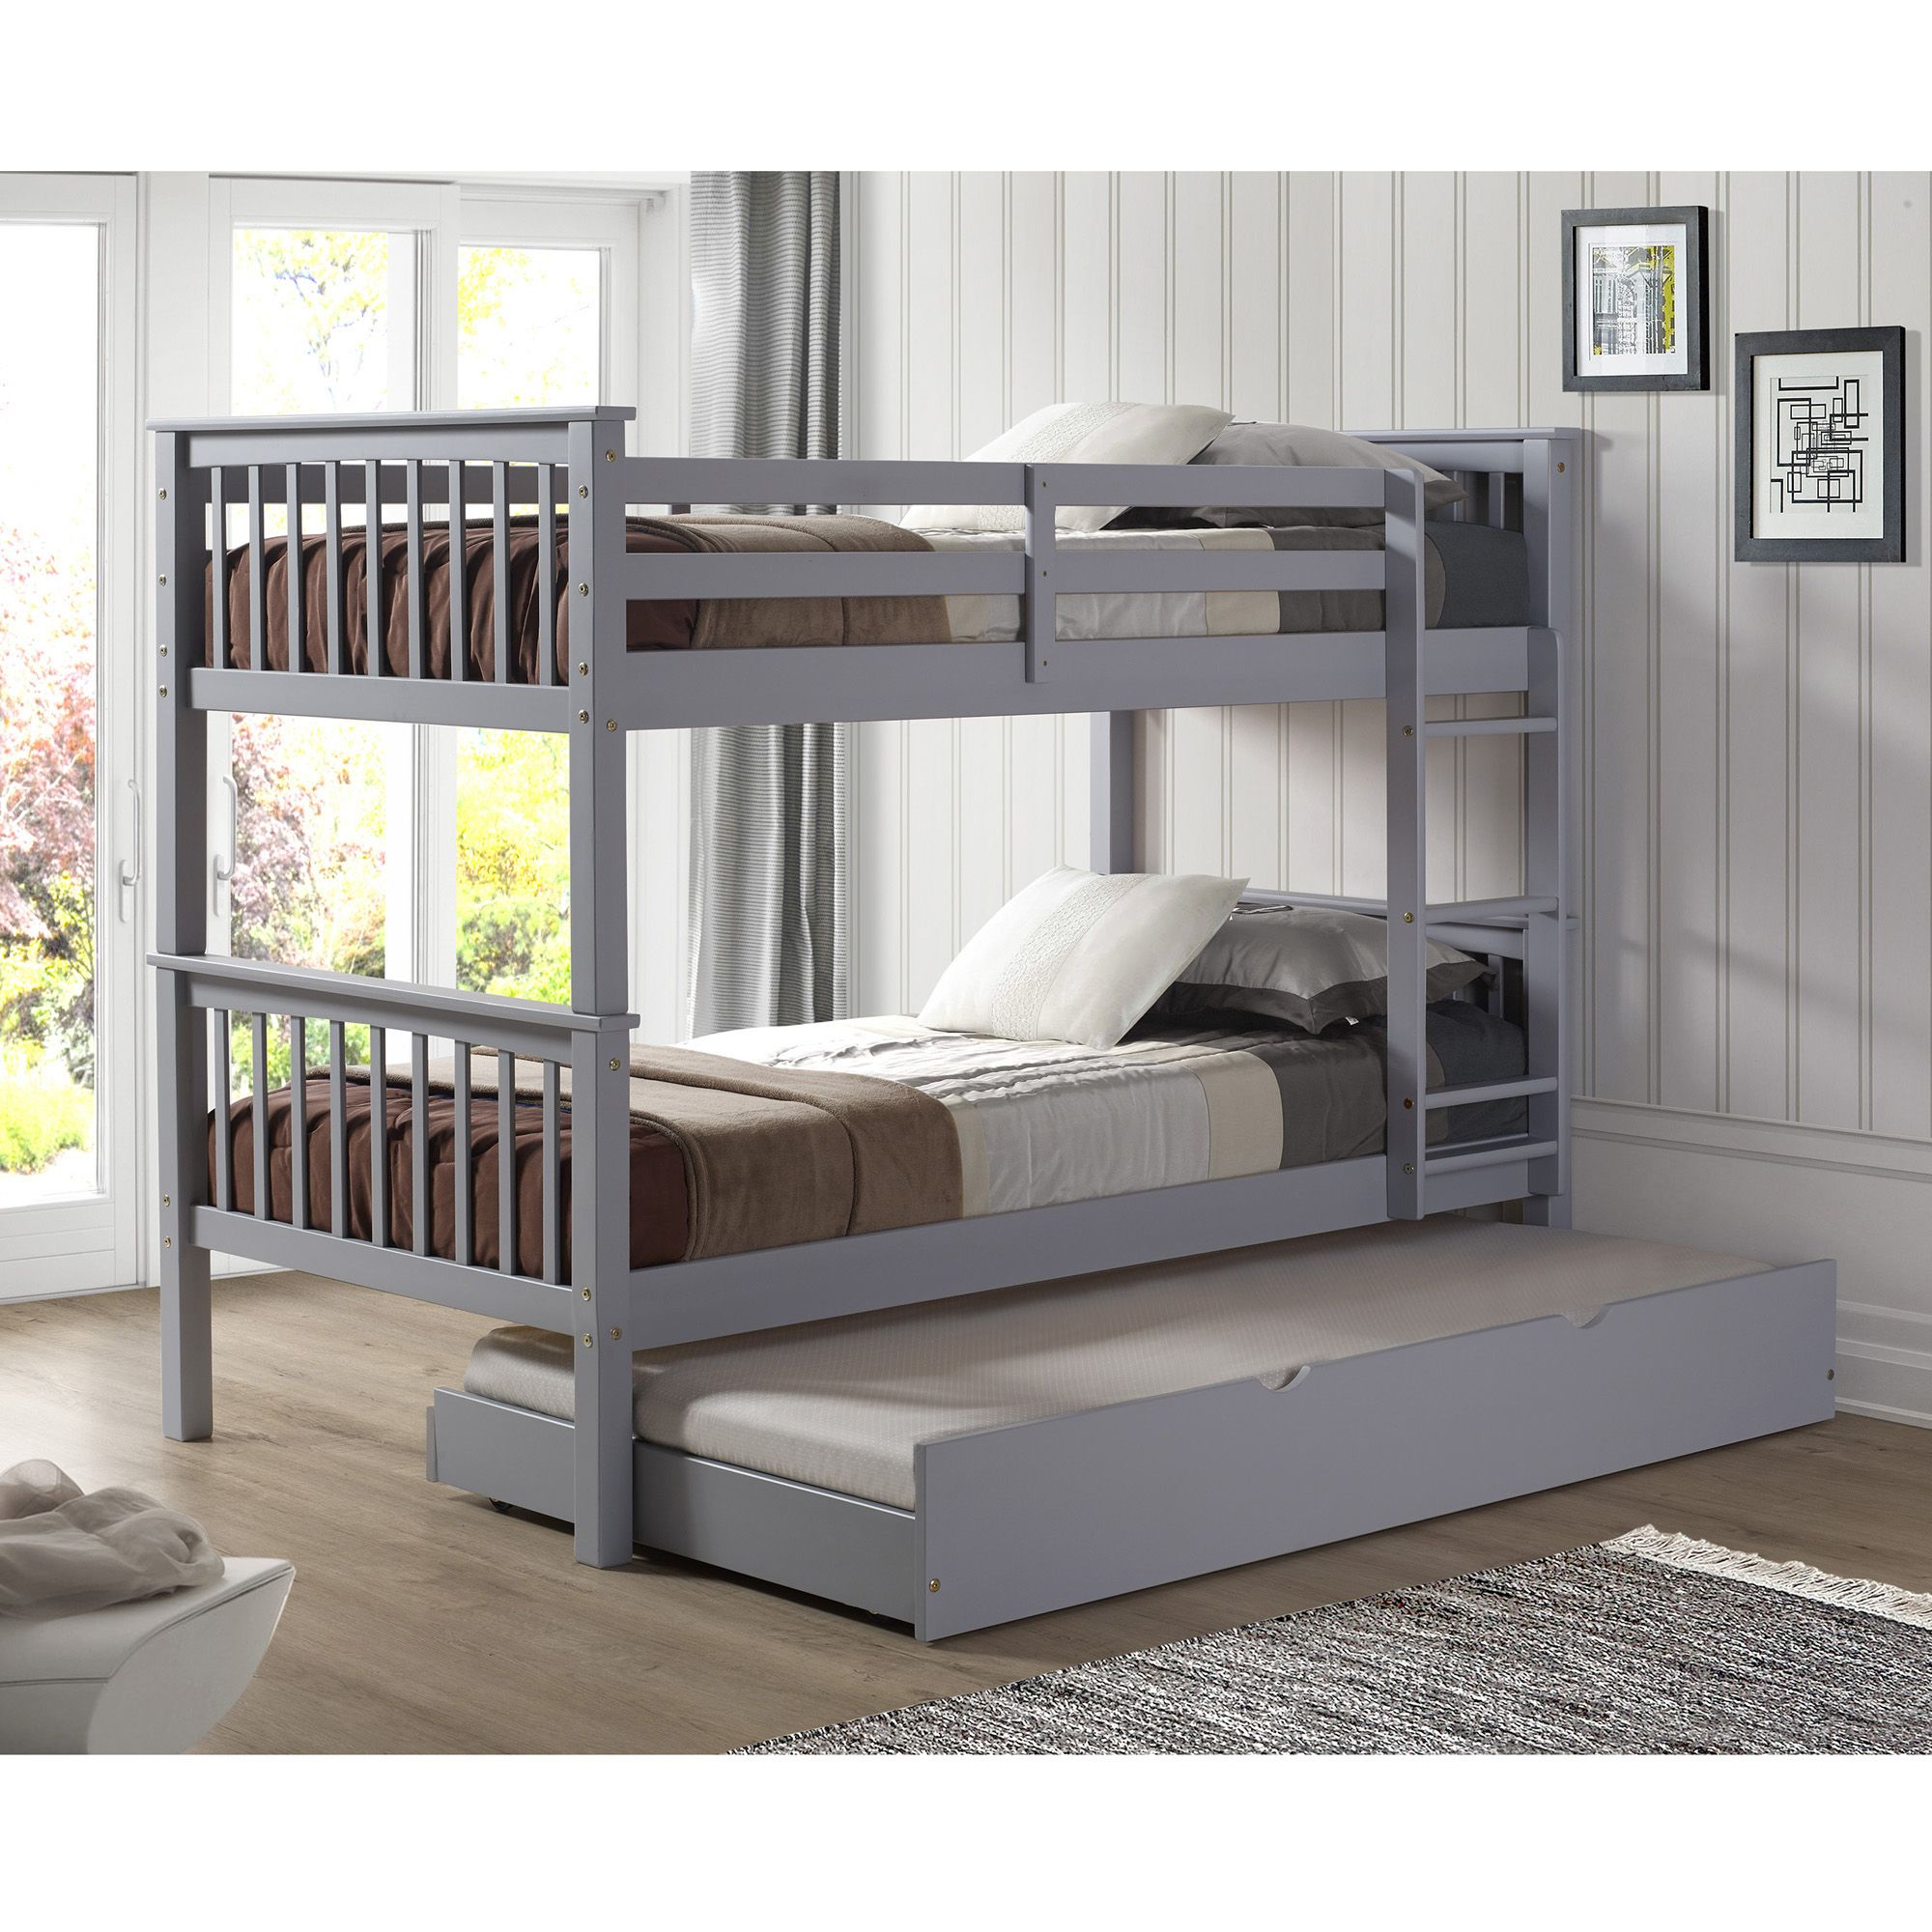 Picture of: W Trends Twin Size Solid Wood Bunk Bed With Trundle Gray Bjs Wholesale Club